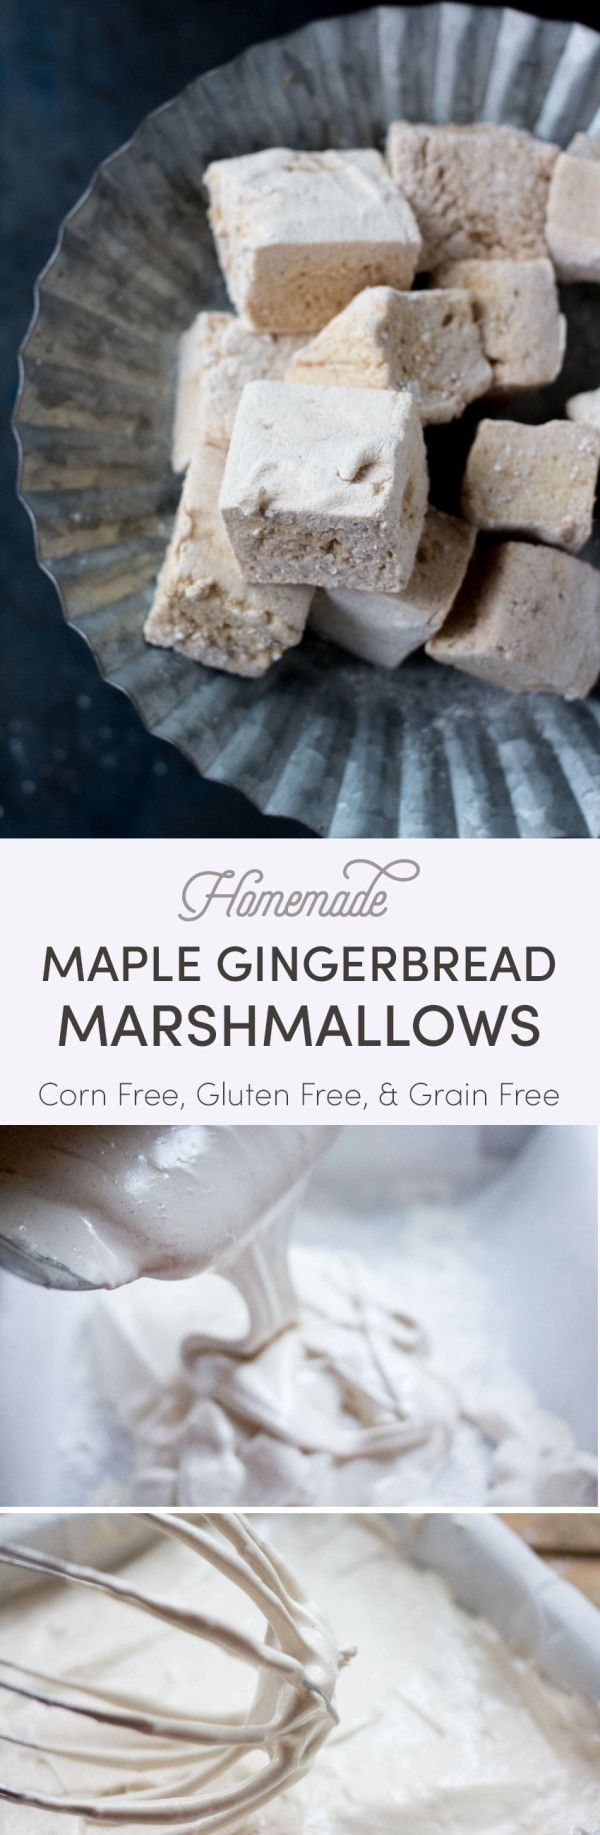 These gingerbread spice marshmallows are sweetened with pure maple syrup instead of corn syrup. Fluffy and pillowy, these homemade marshmallows are a real treat on their own, in a gluten free s'more, or on top of your hot chocolate!